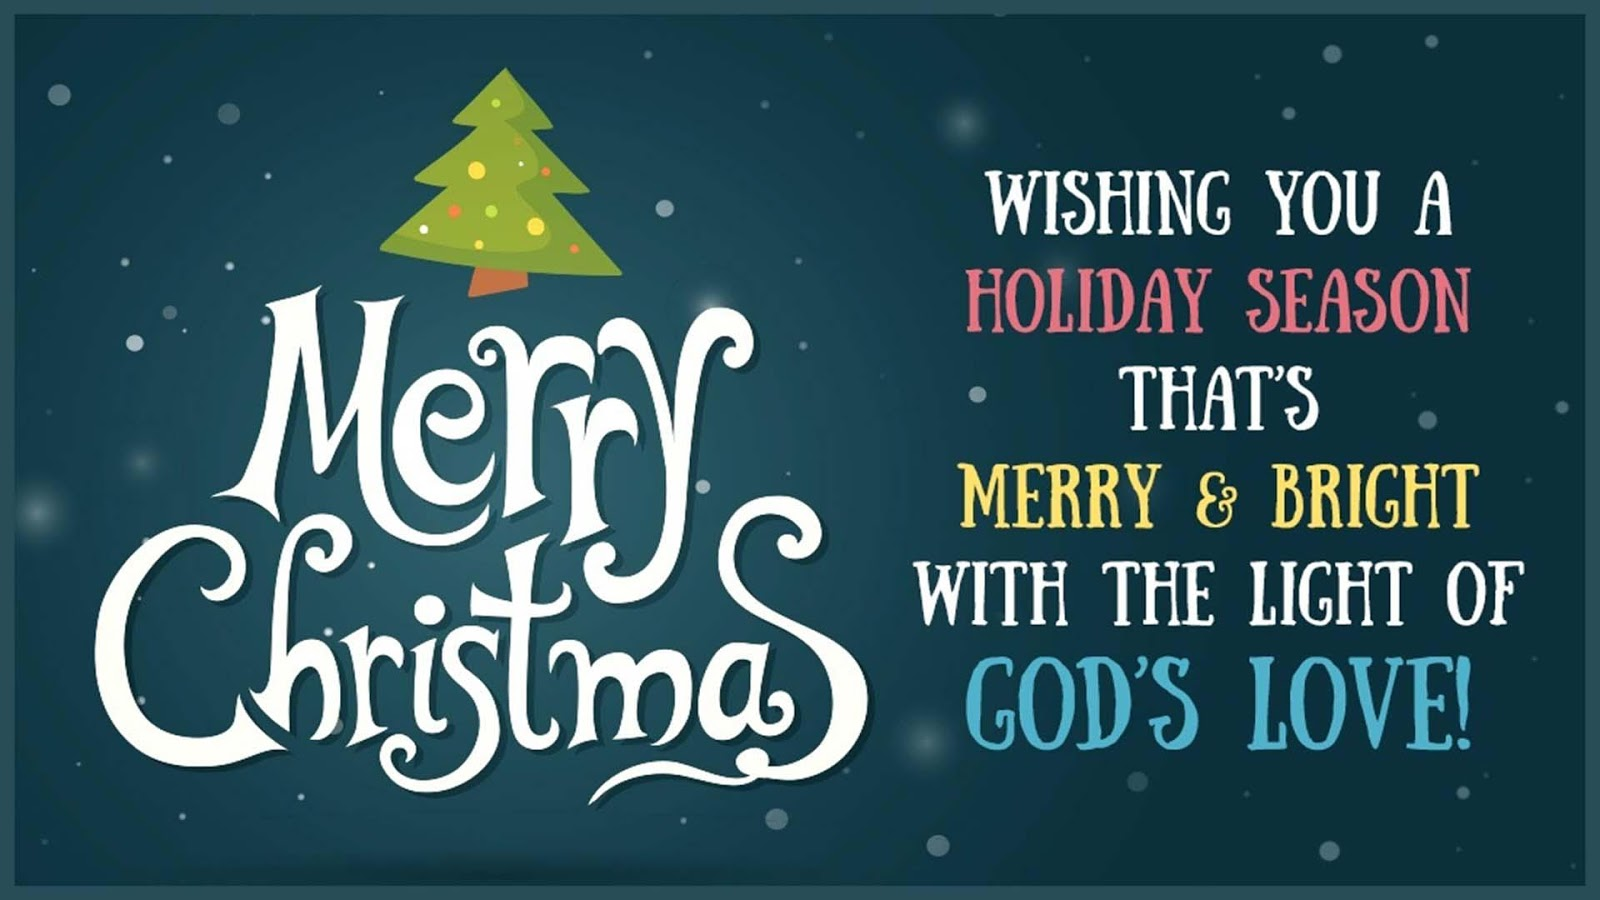 Christmas Greeting Cards 10 Apk Download Android Entertainment Apps